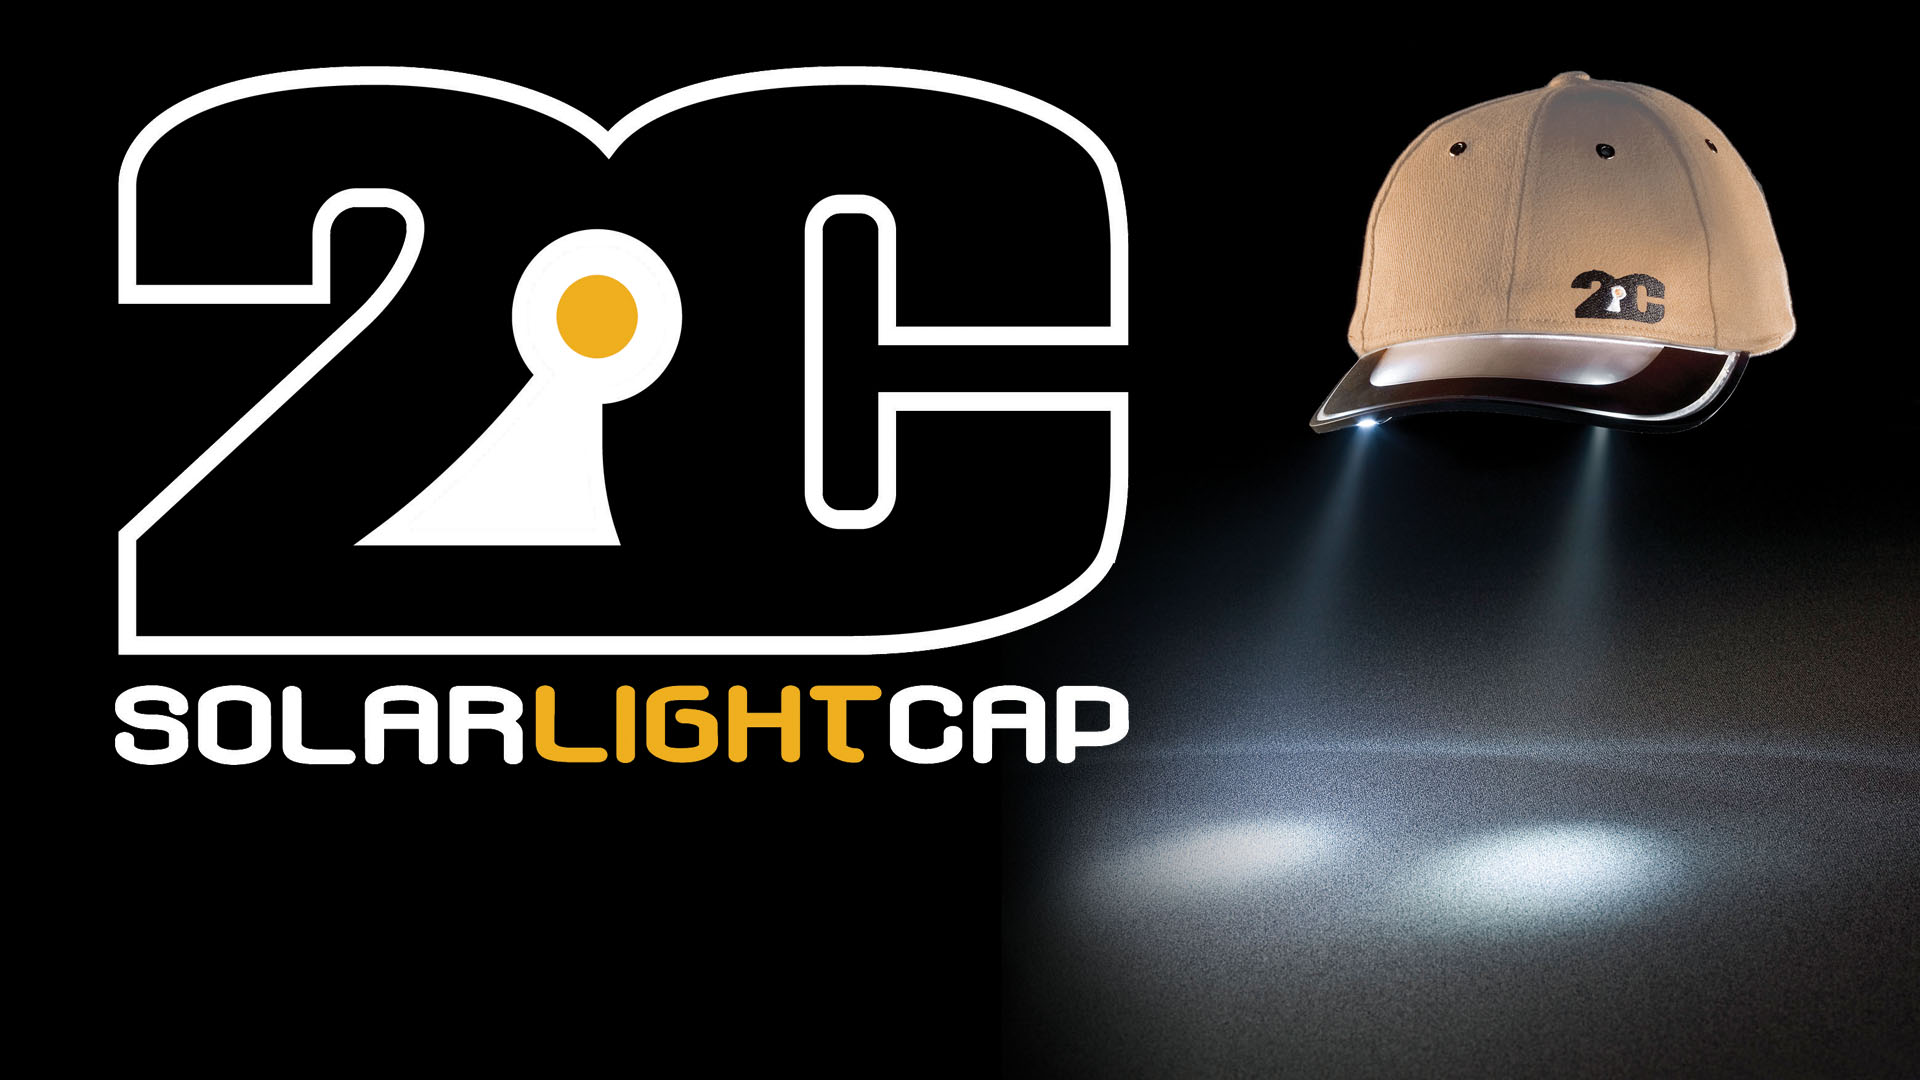 2C Solar Light cap - self charging wearable flashlight